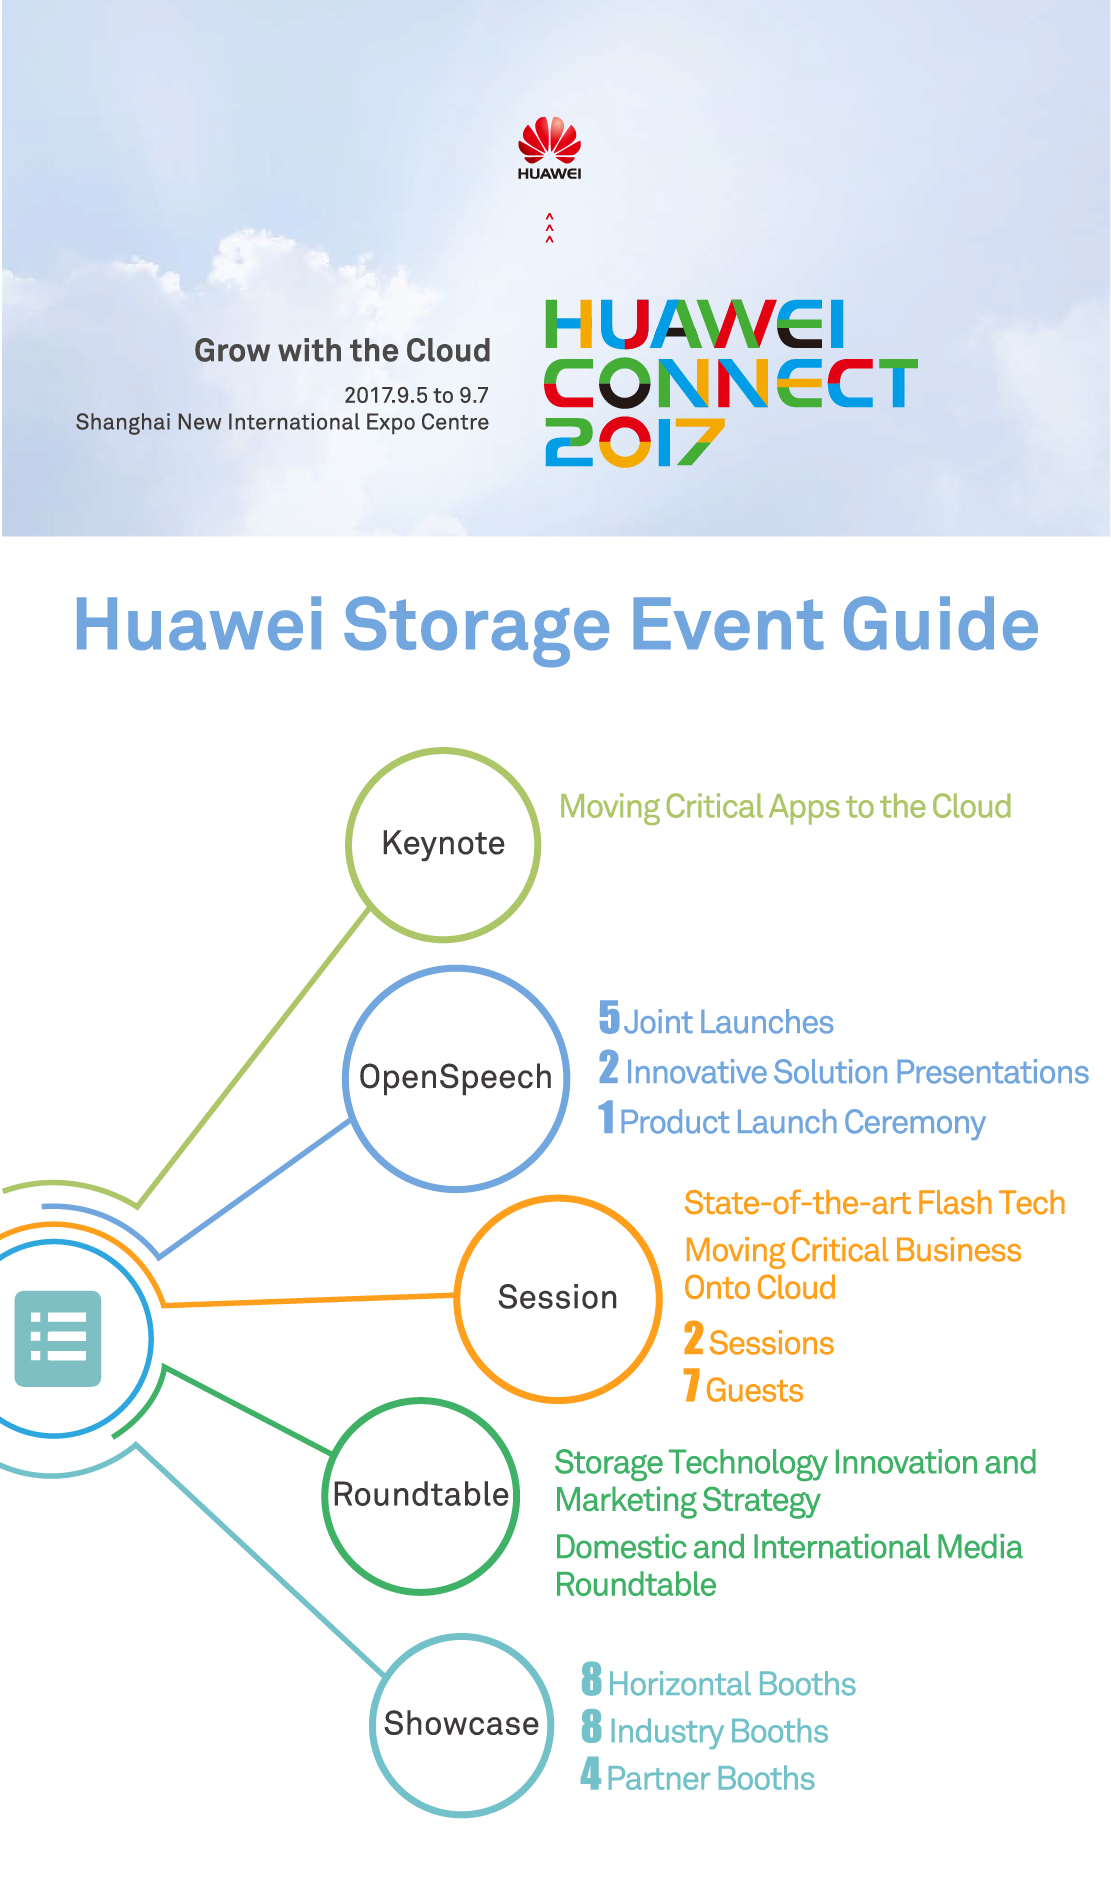 HUAWEI CONNECT 2017   Huawei Storage Event Guide – duncannagle com